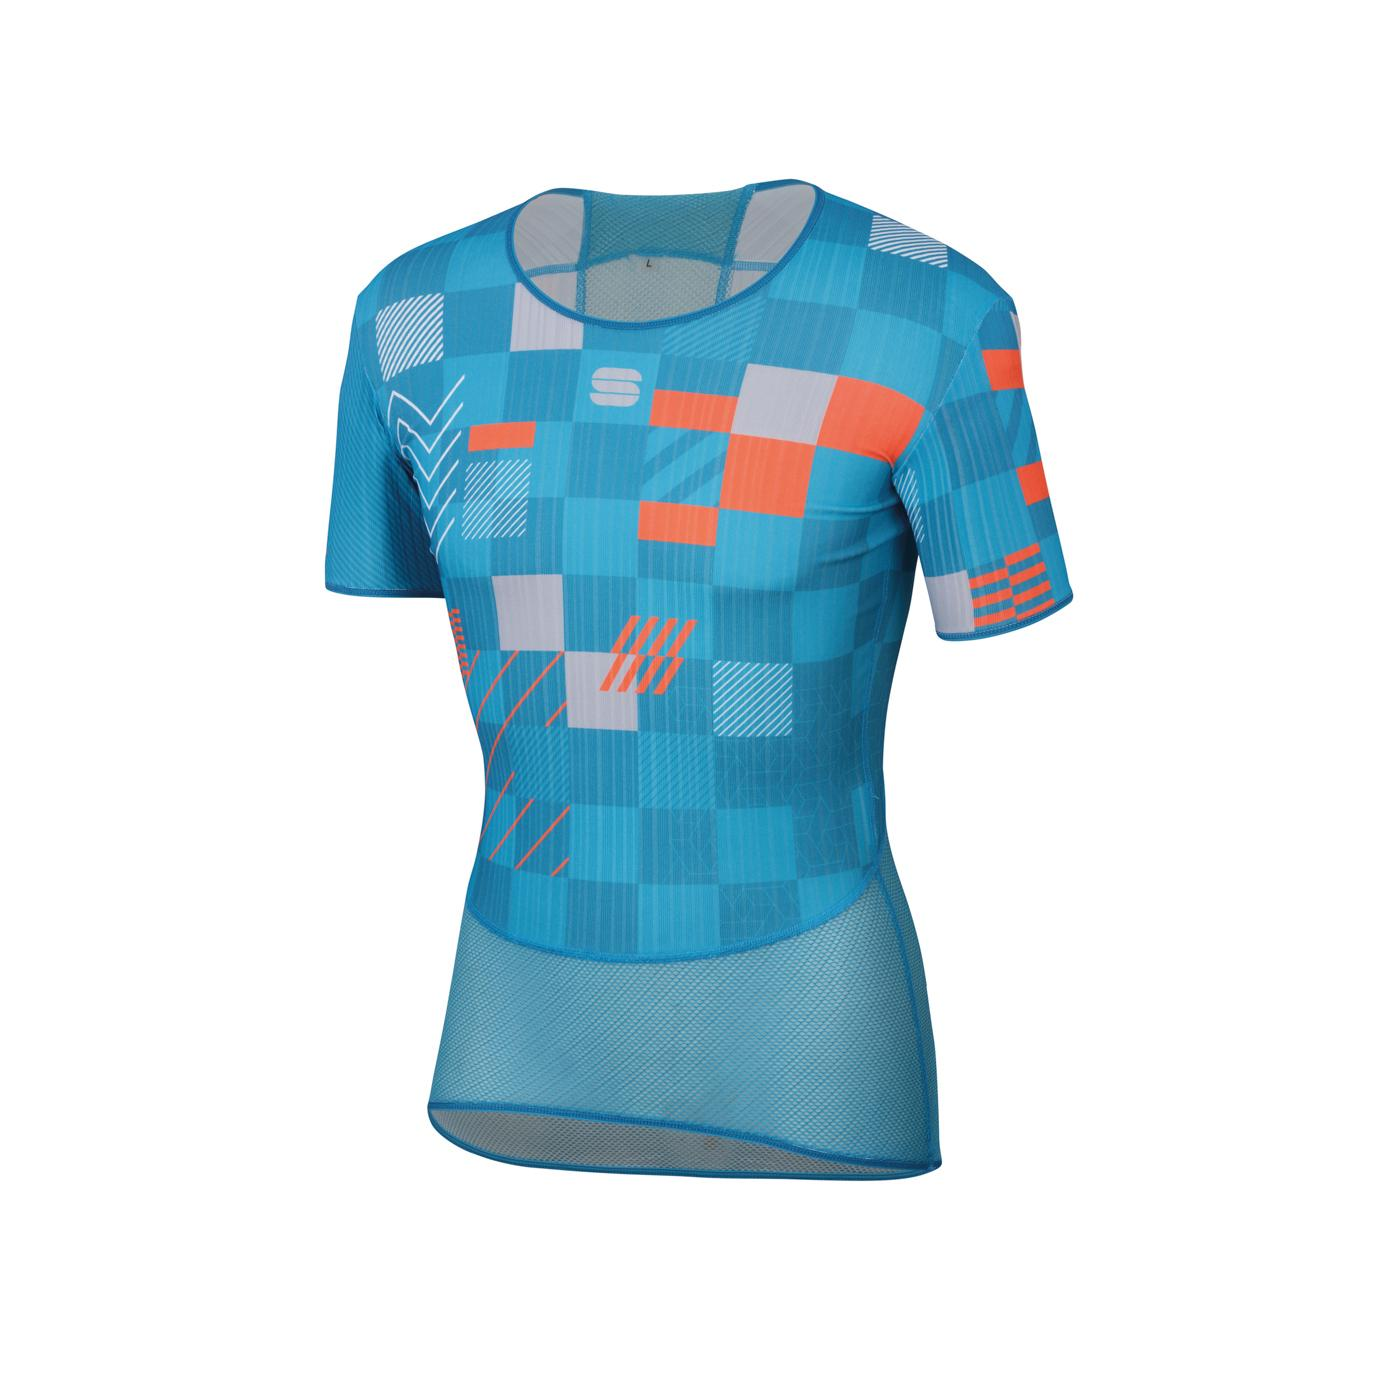 Sportful Ondershirt Korte mouwen voor Heren Blauw Oranje - SF Pro Baselayer Tee-Blue A Methyl Orange